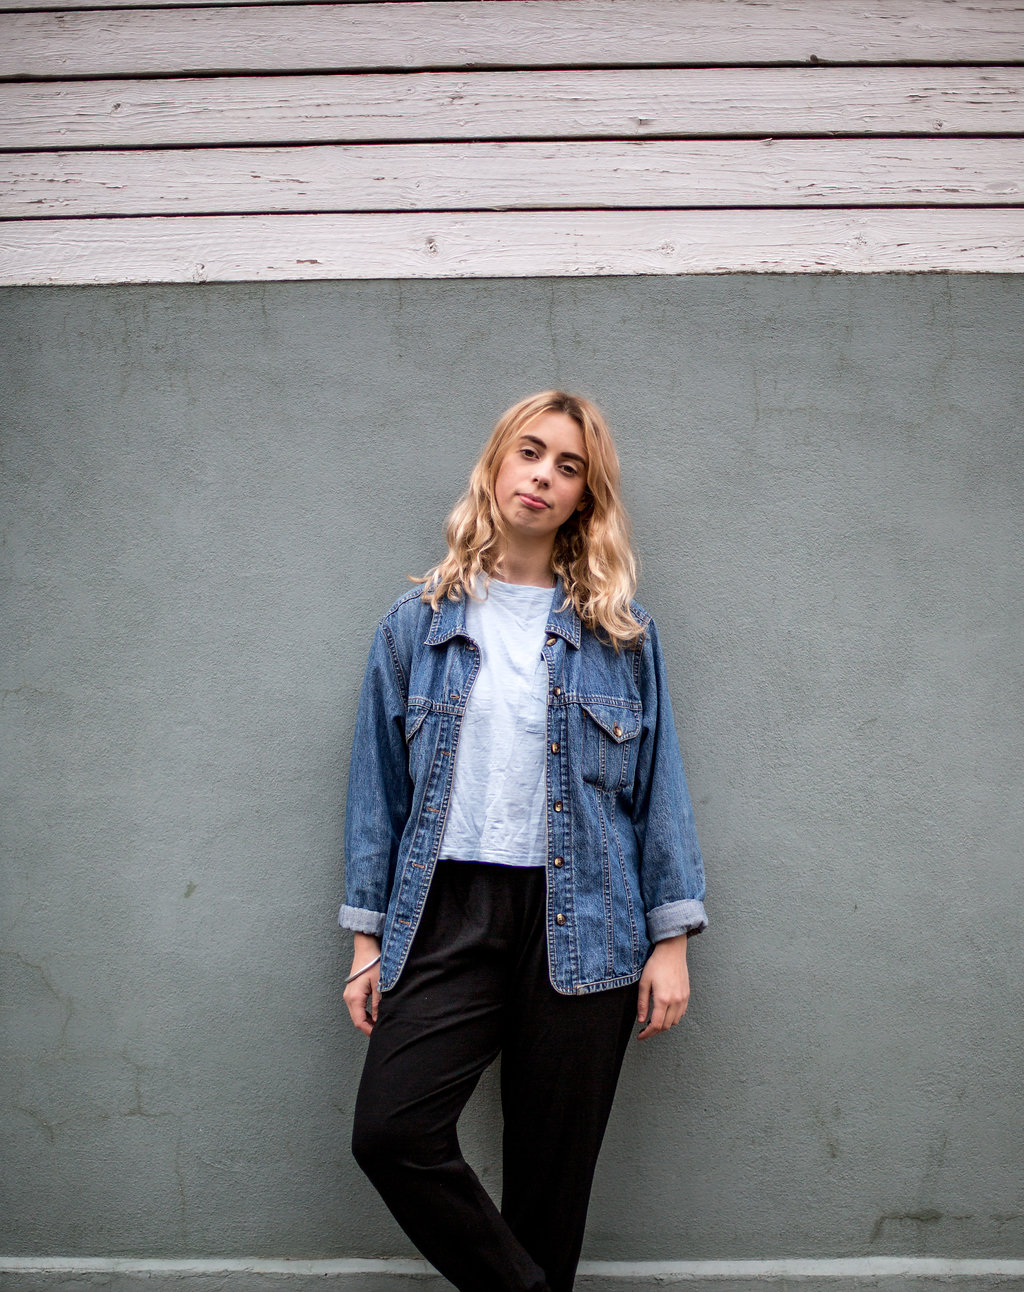 Causal denim jacket outfit // A Week Of Vibrant & Global Outfits With Francesca Willow From Ethical Unicorn on The Good Trade